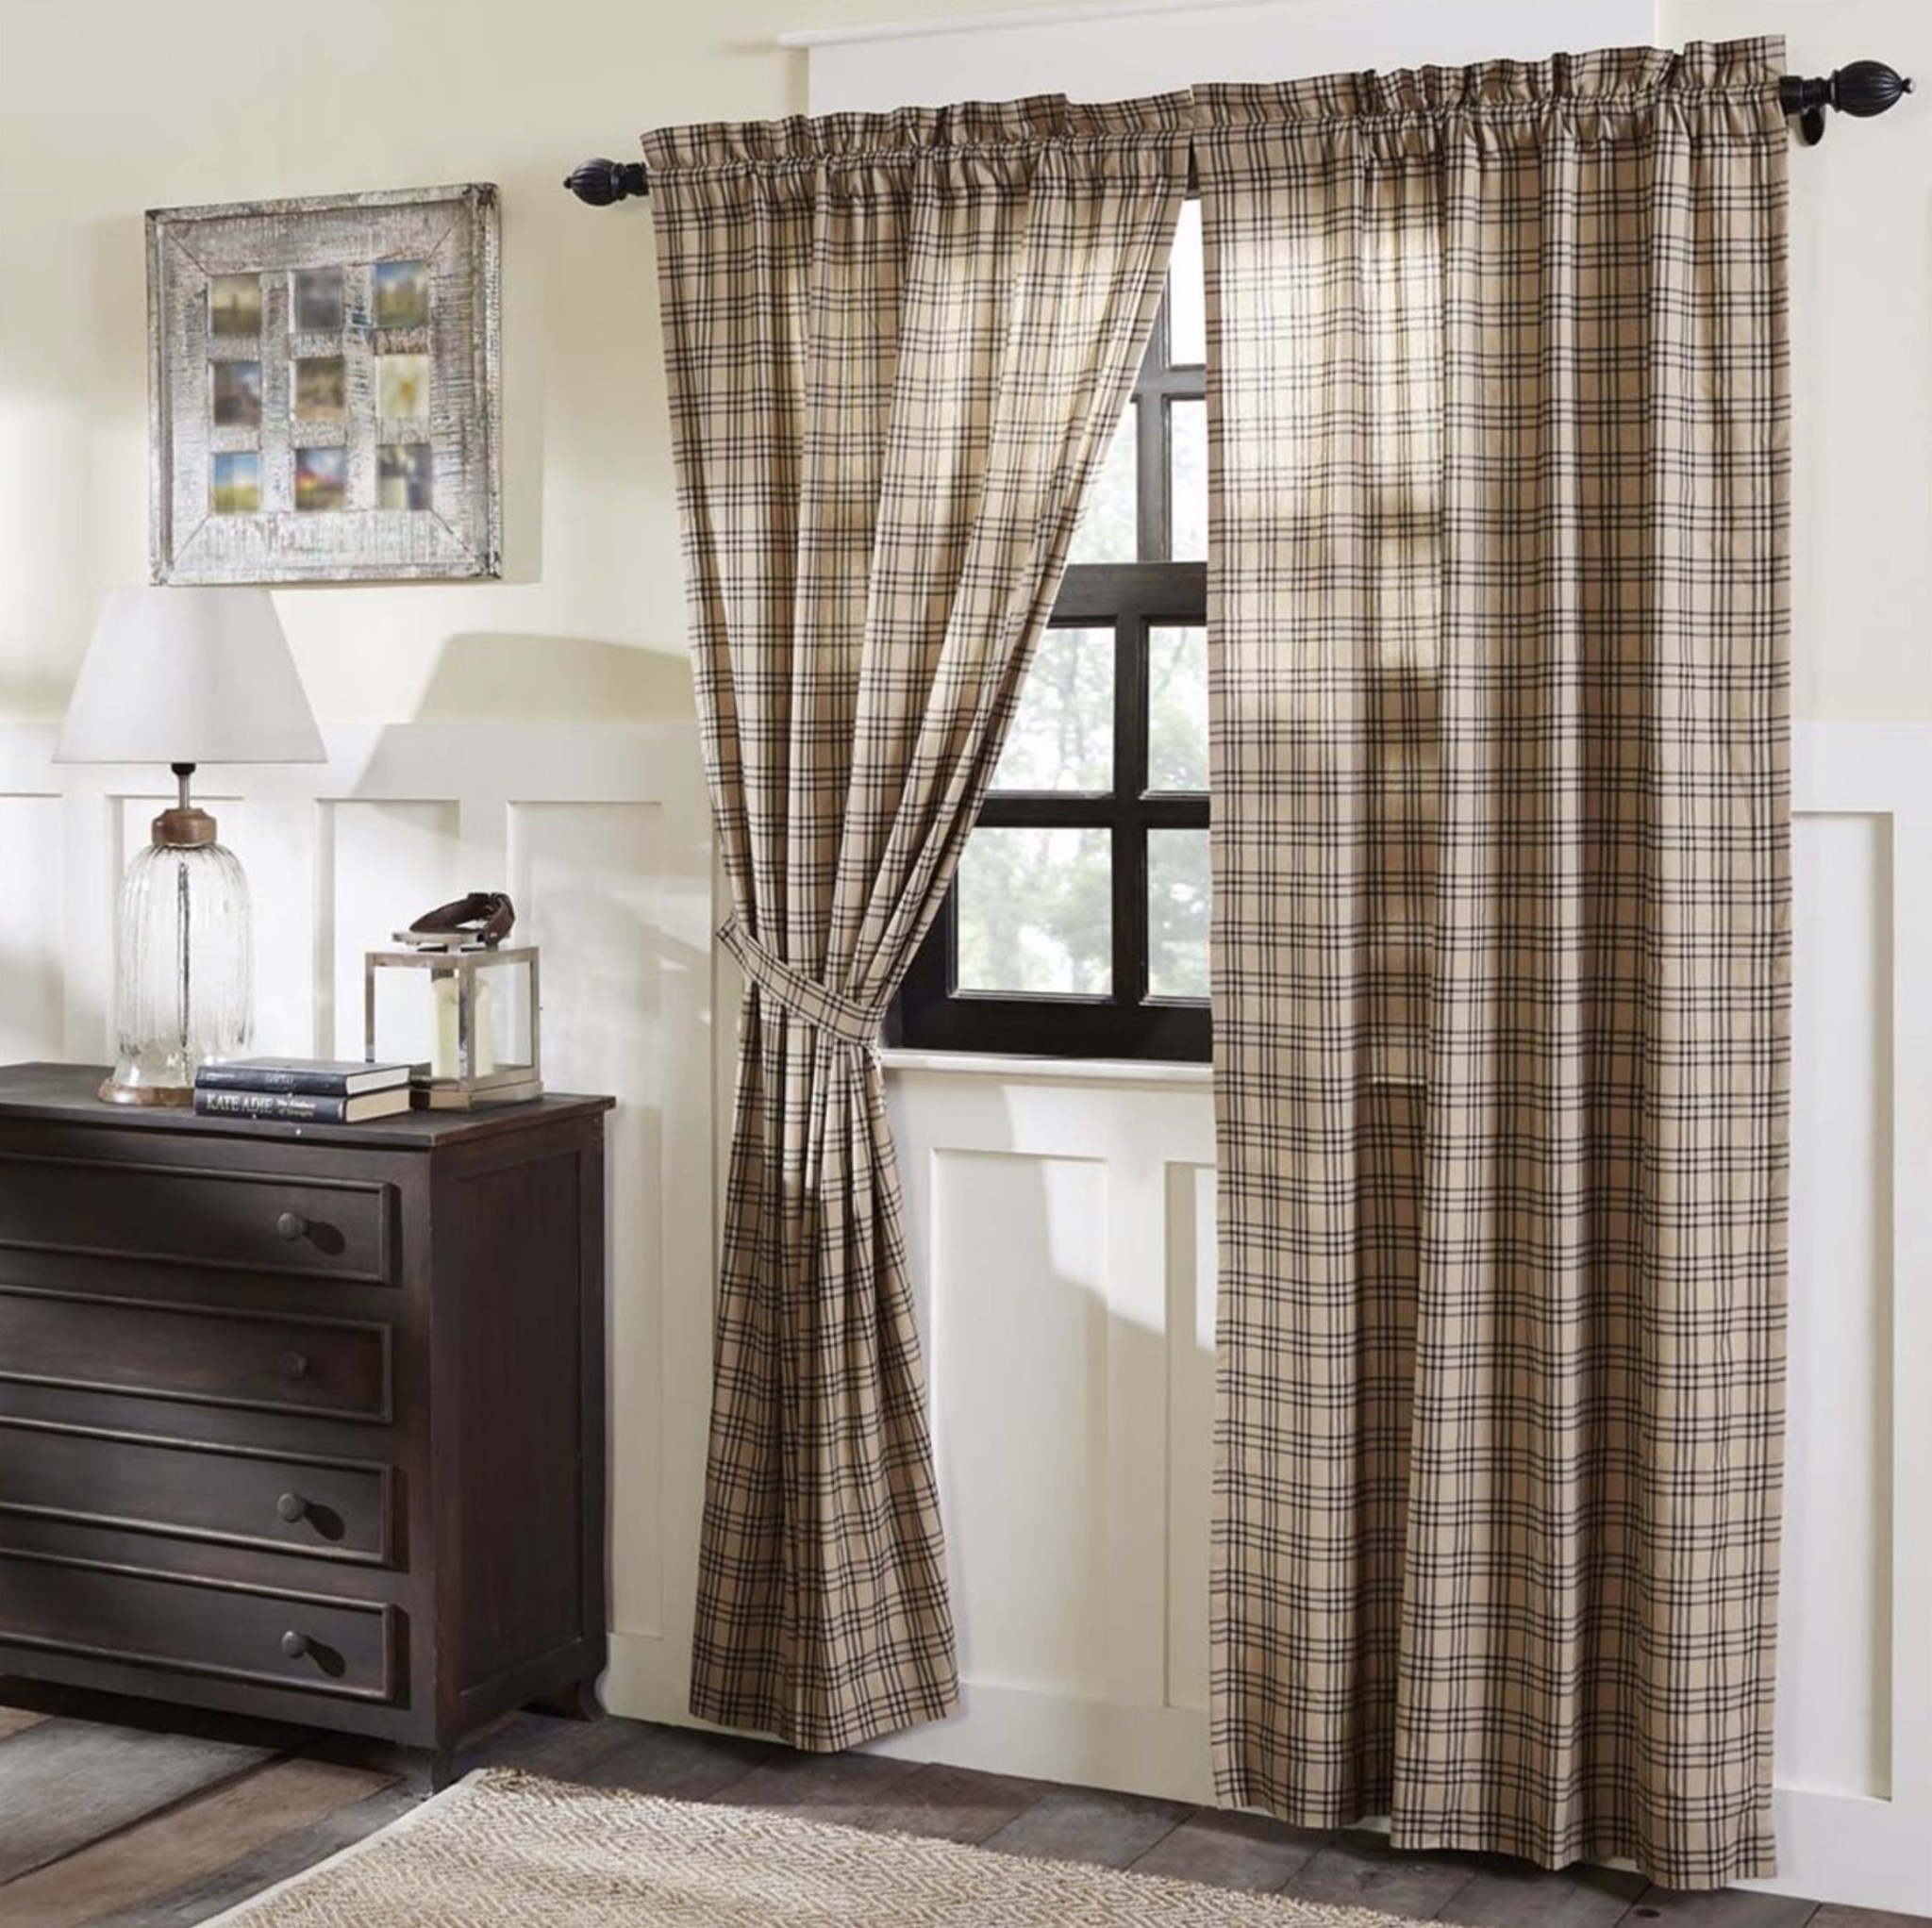 VHC Brands Sawyer Mill Charcoal Plaid Lined Panel Set of 2